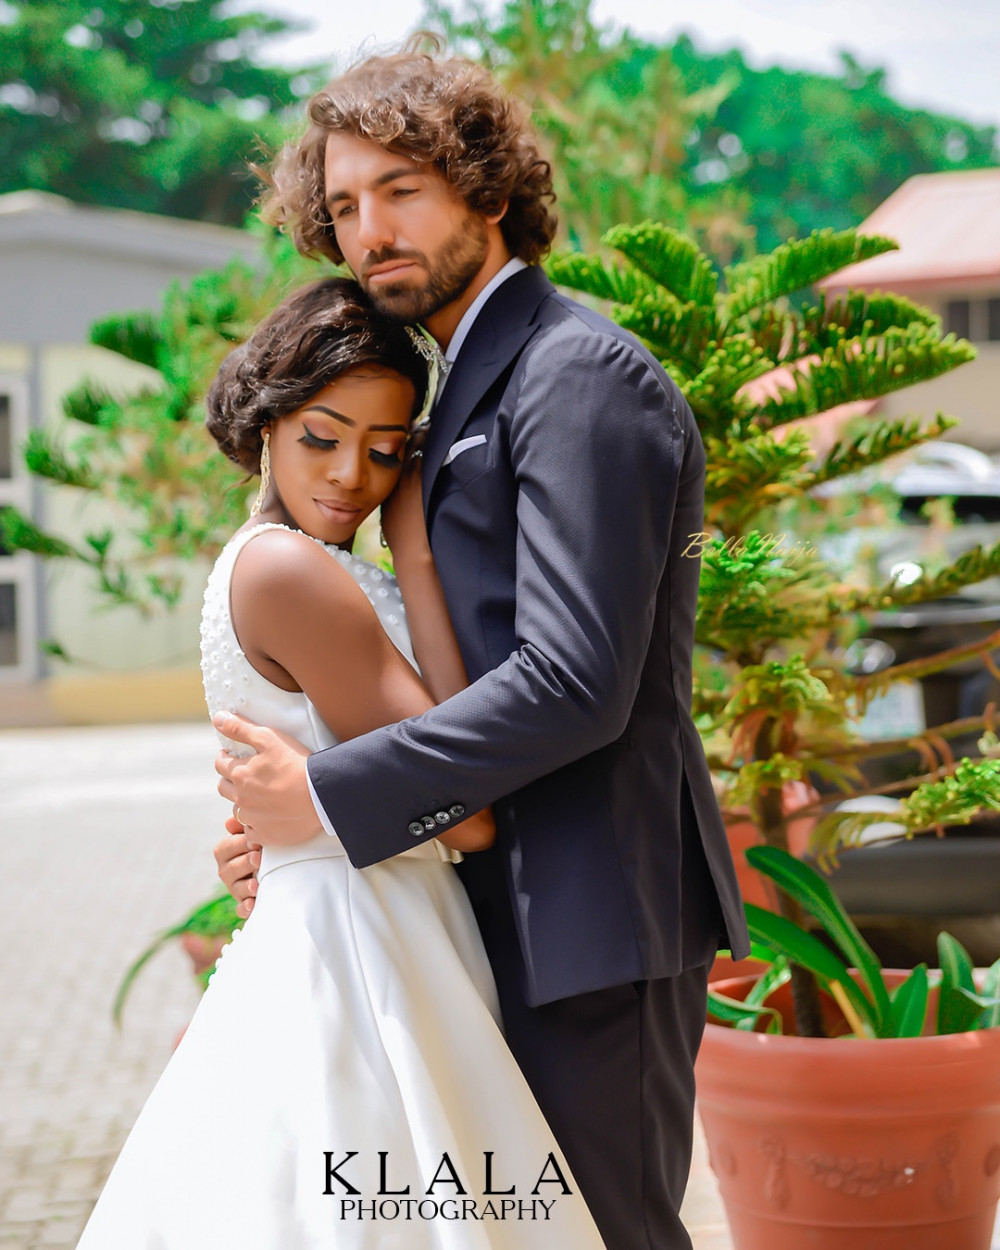 Nigerian woman marries her Italian king!! | Page 7 | Lipstick Alley